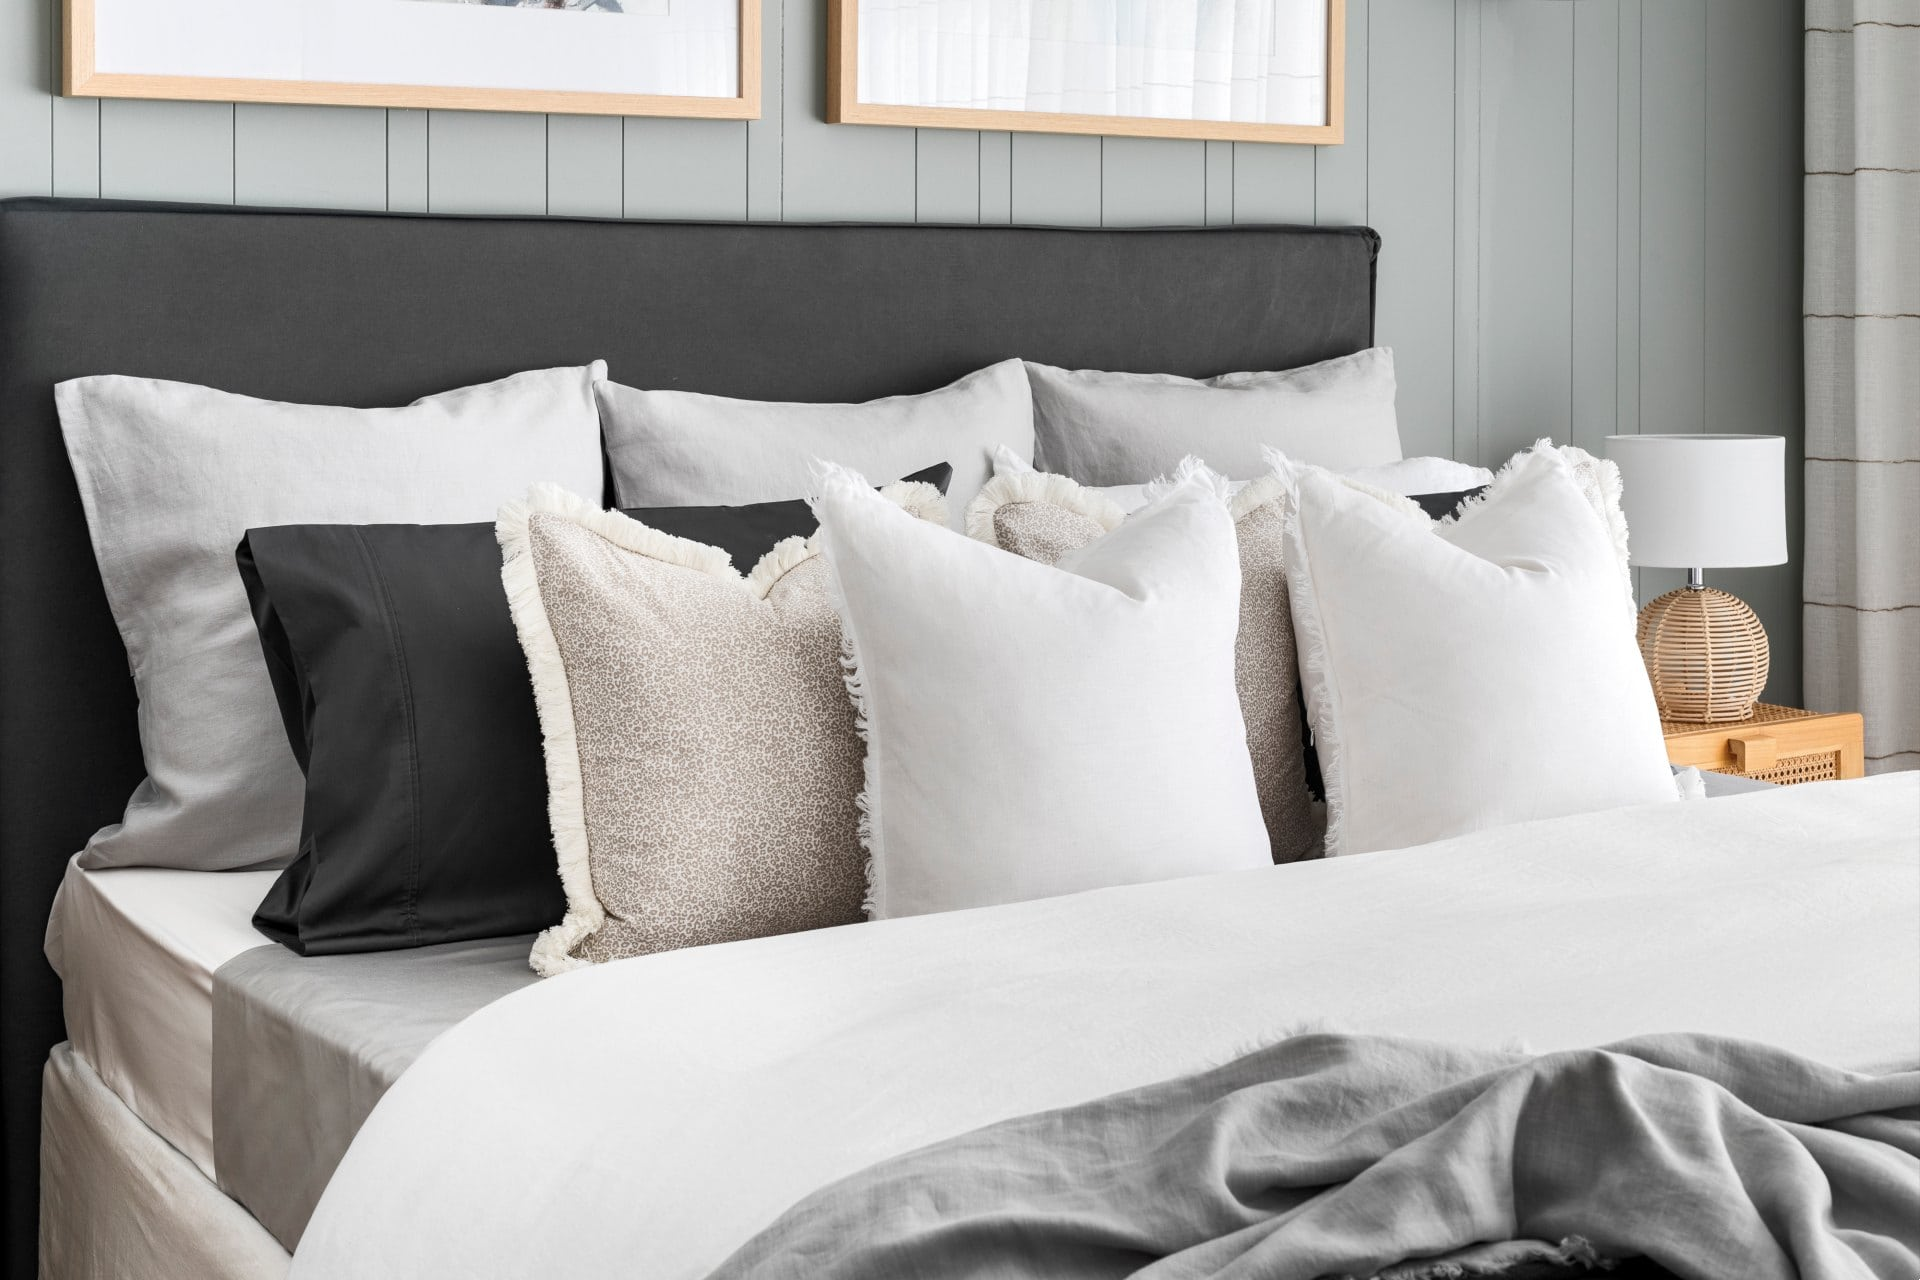 styling a bed with pillows and cushions white bedding grey headboard sage green vj panel wall